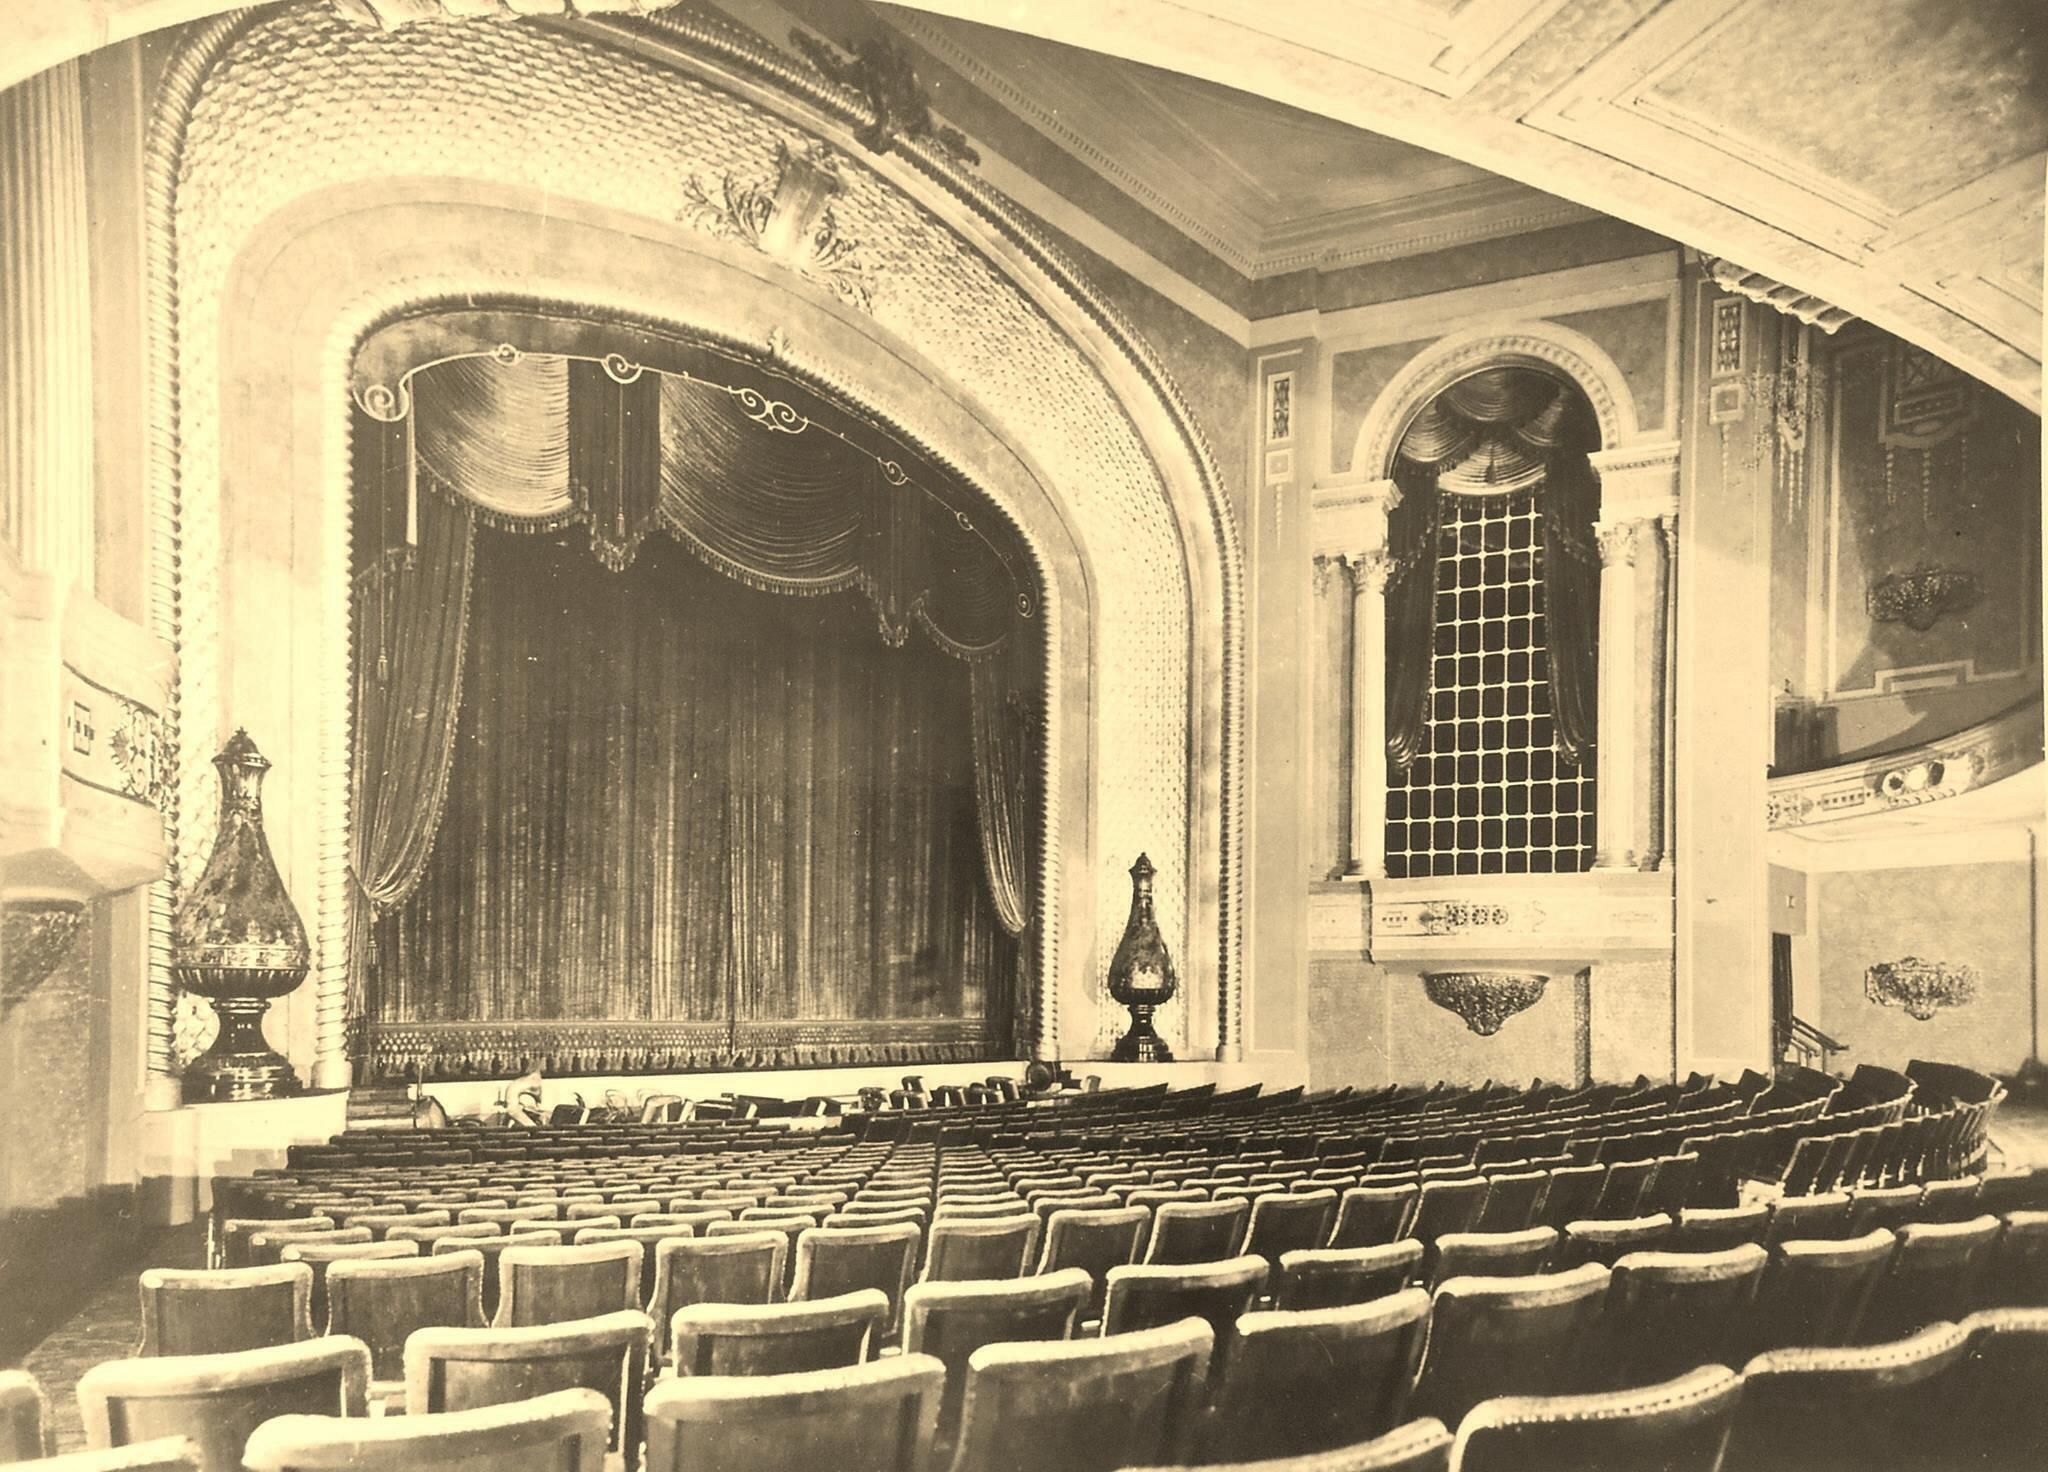 Palais Pictures C 1930s Downstairs Auditorium Orchestra Seating Featuring Original Draping And Decoration Places In Melbourne St Kilda Melbourne